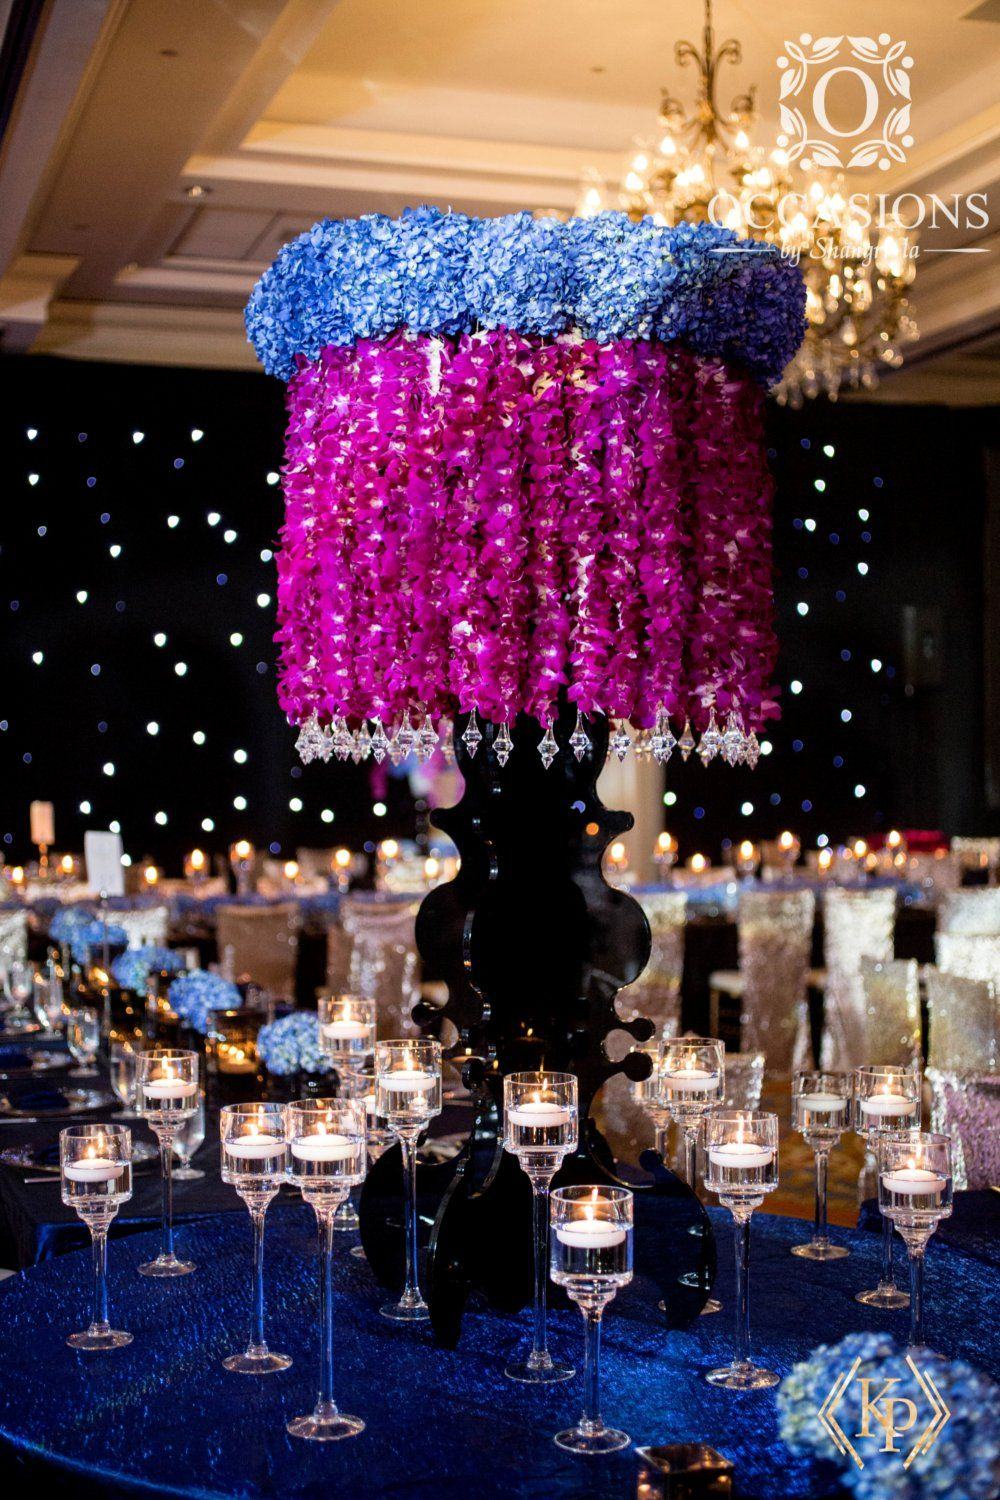 Occasions by Shangri La, a full service event decor and